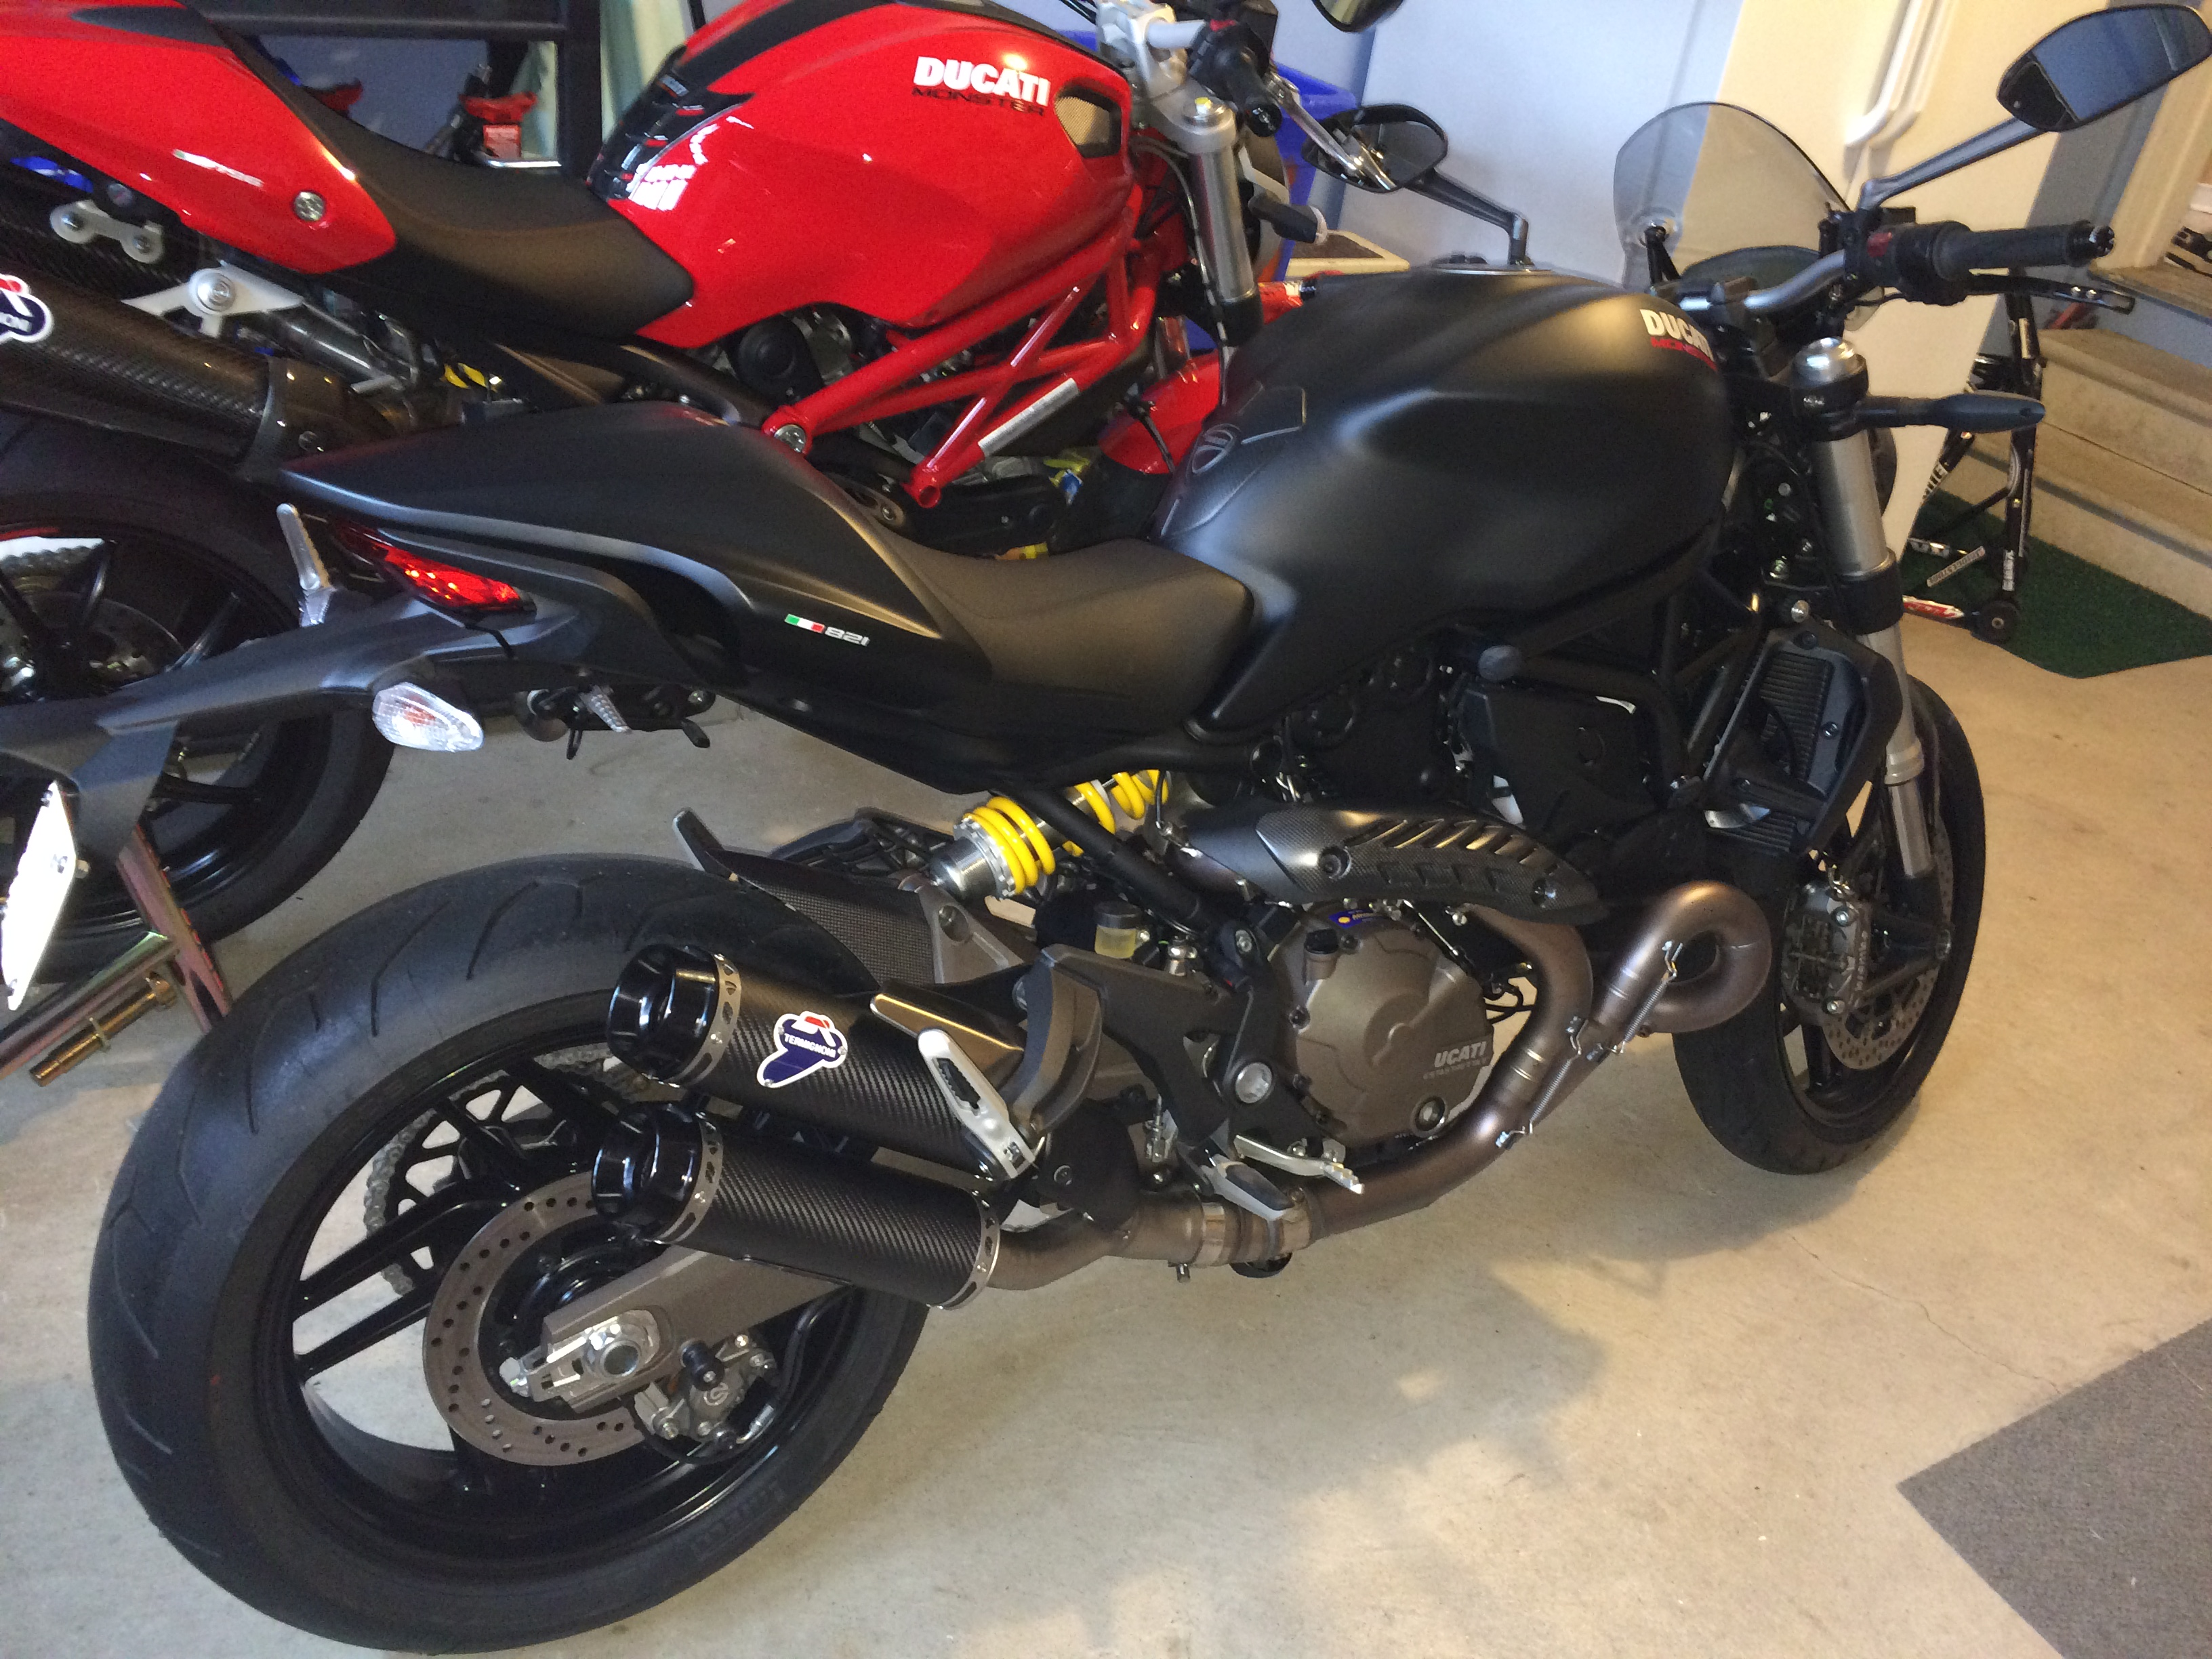 Ducati Monster Owners Forum